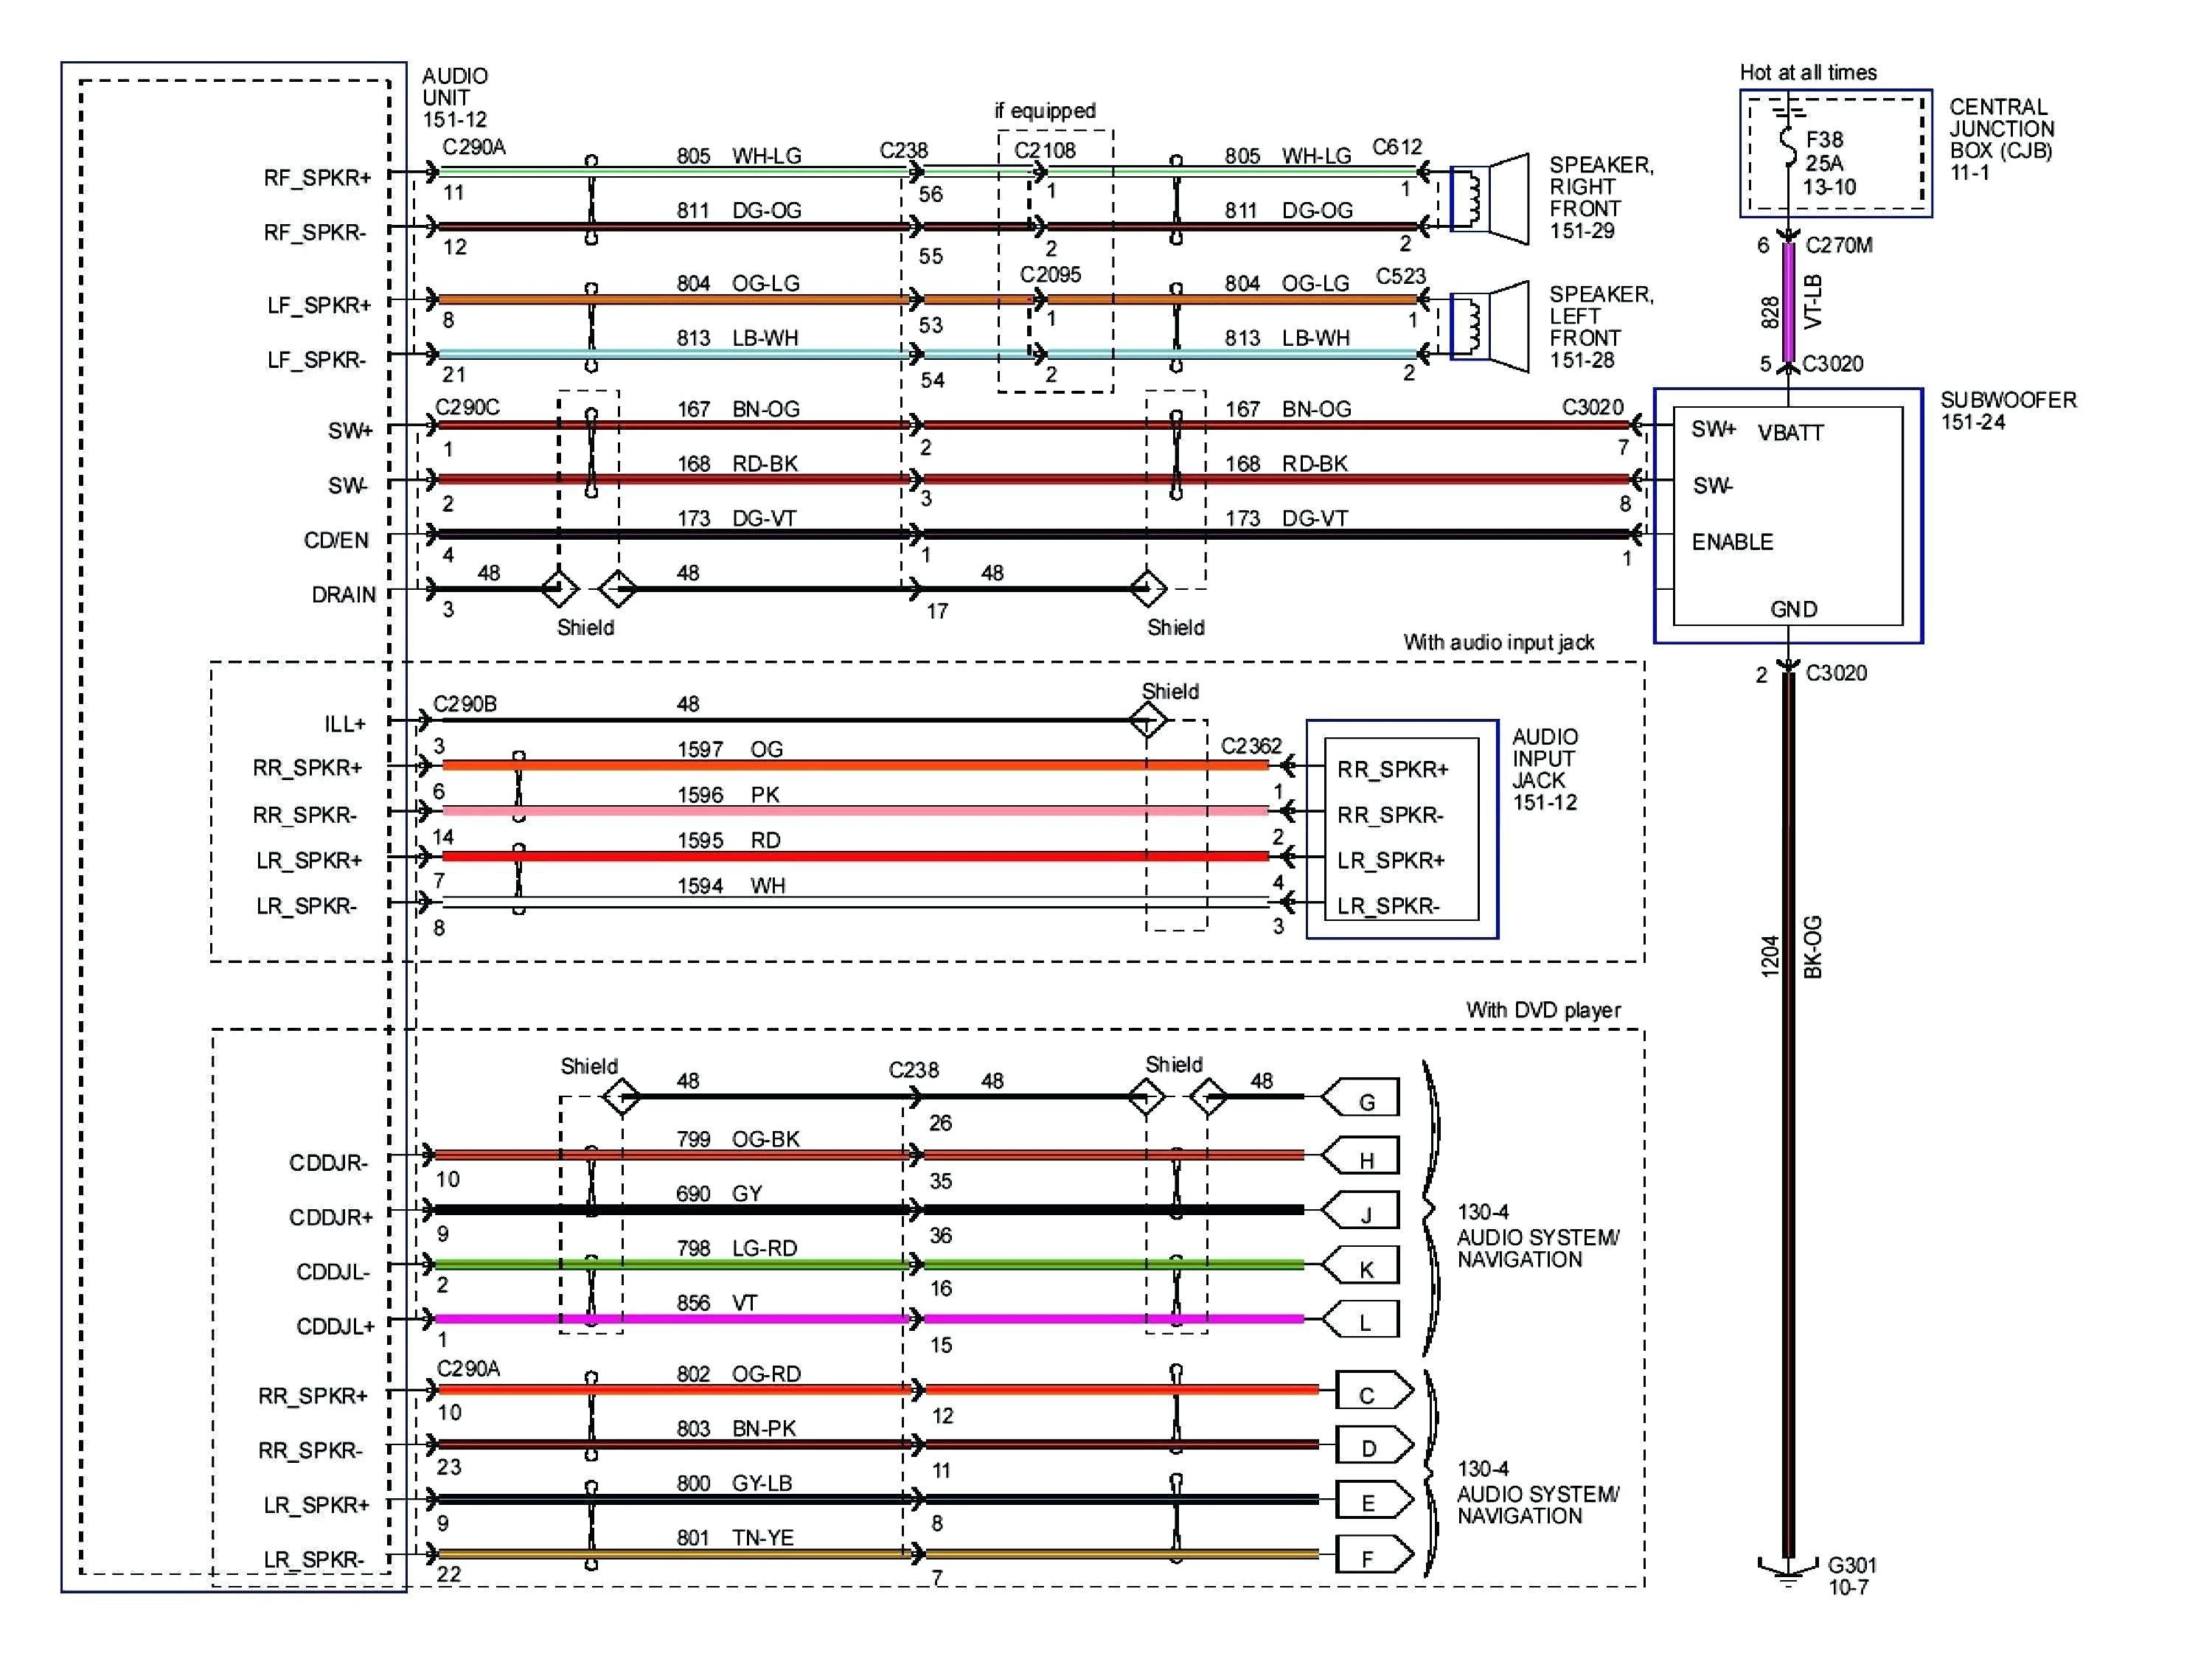 Wiring Diagram for Clarion Car Stereo in 2020 | Electrical wiring diagram,  Diagram, Trailer wiring diagram | 1998 Bmw Z3 Wiring Diagrams |  | Pinterest